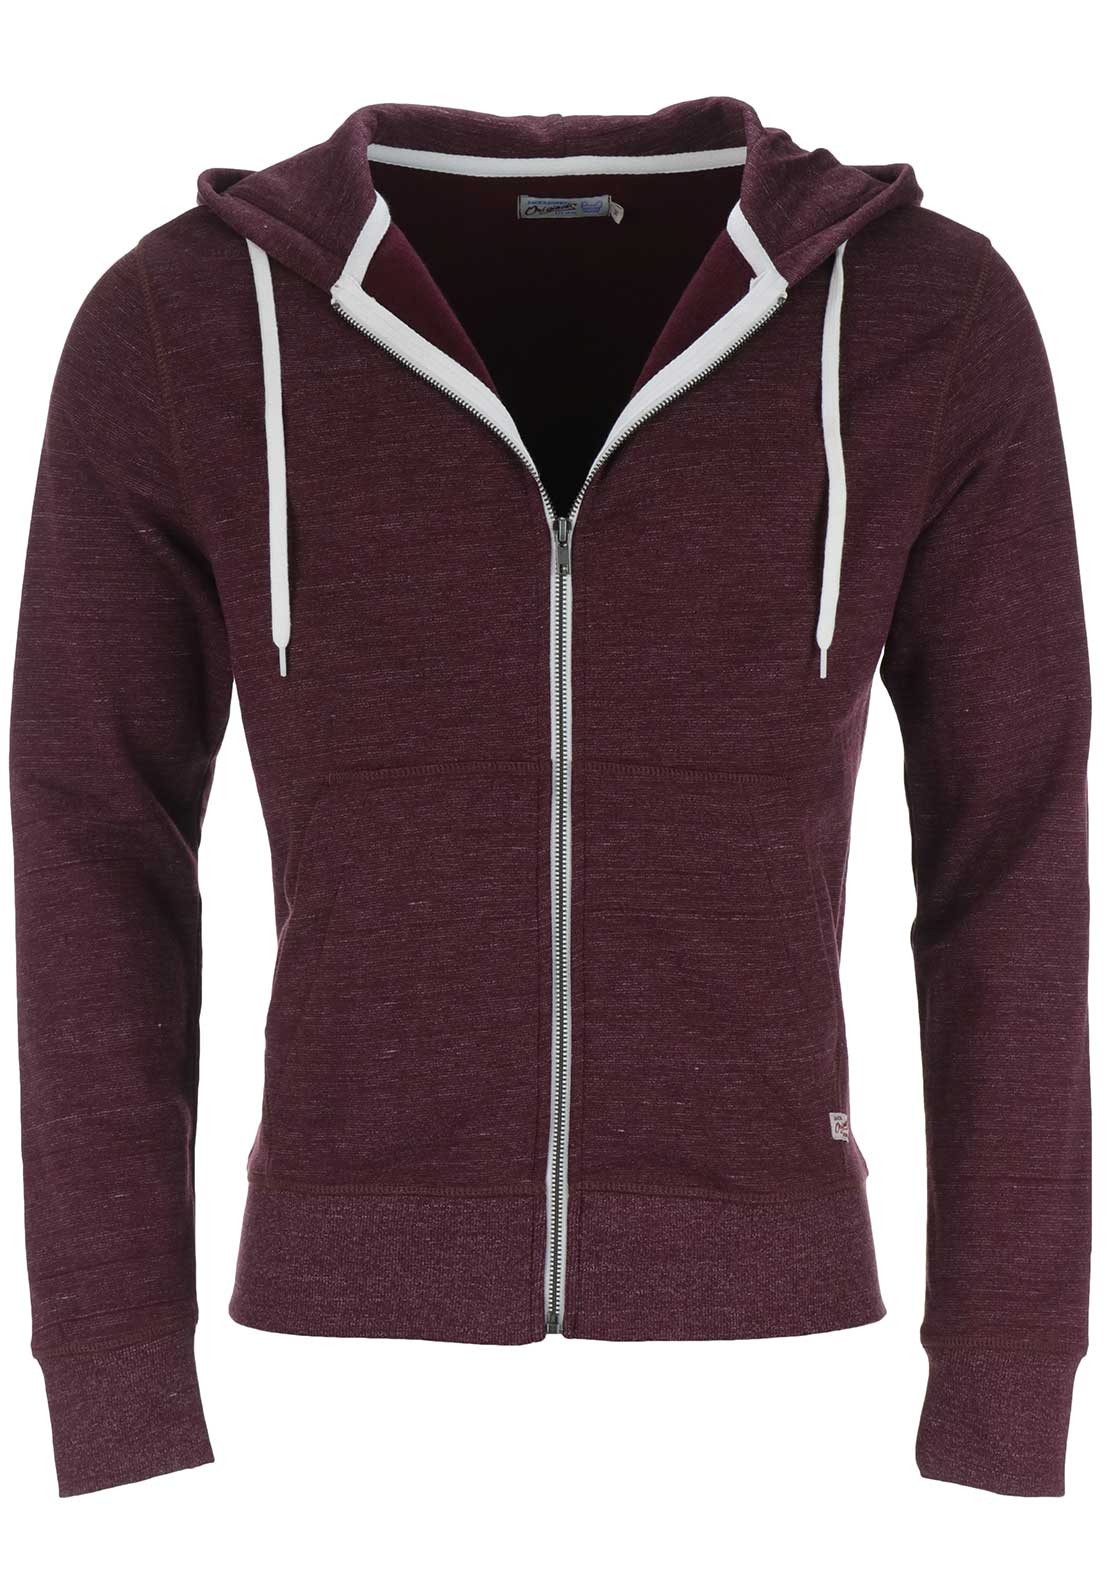 Jack & Jones Originals Storm Zip Up Hoodie, Wine